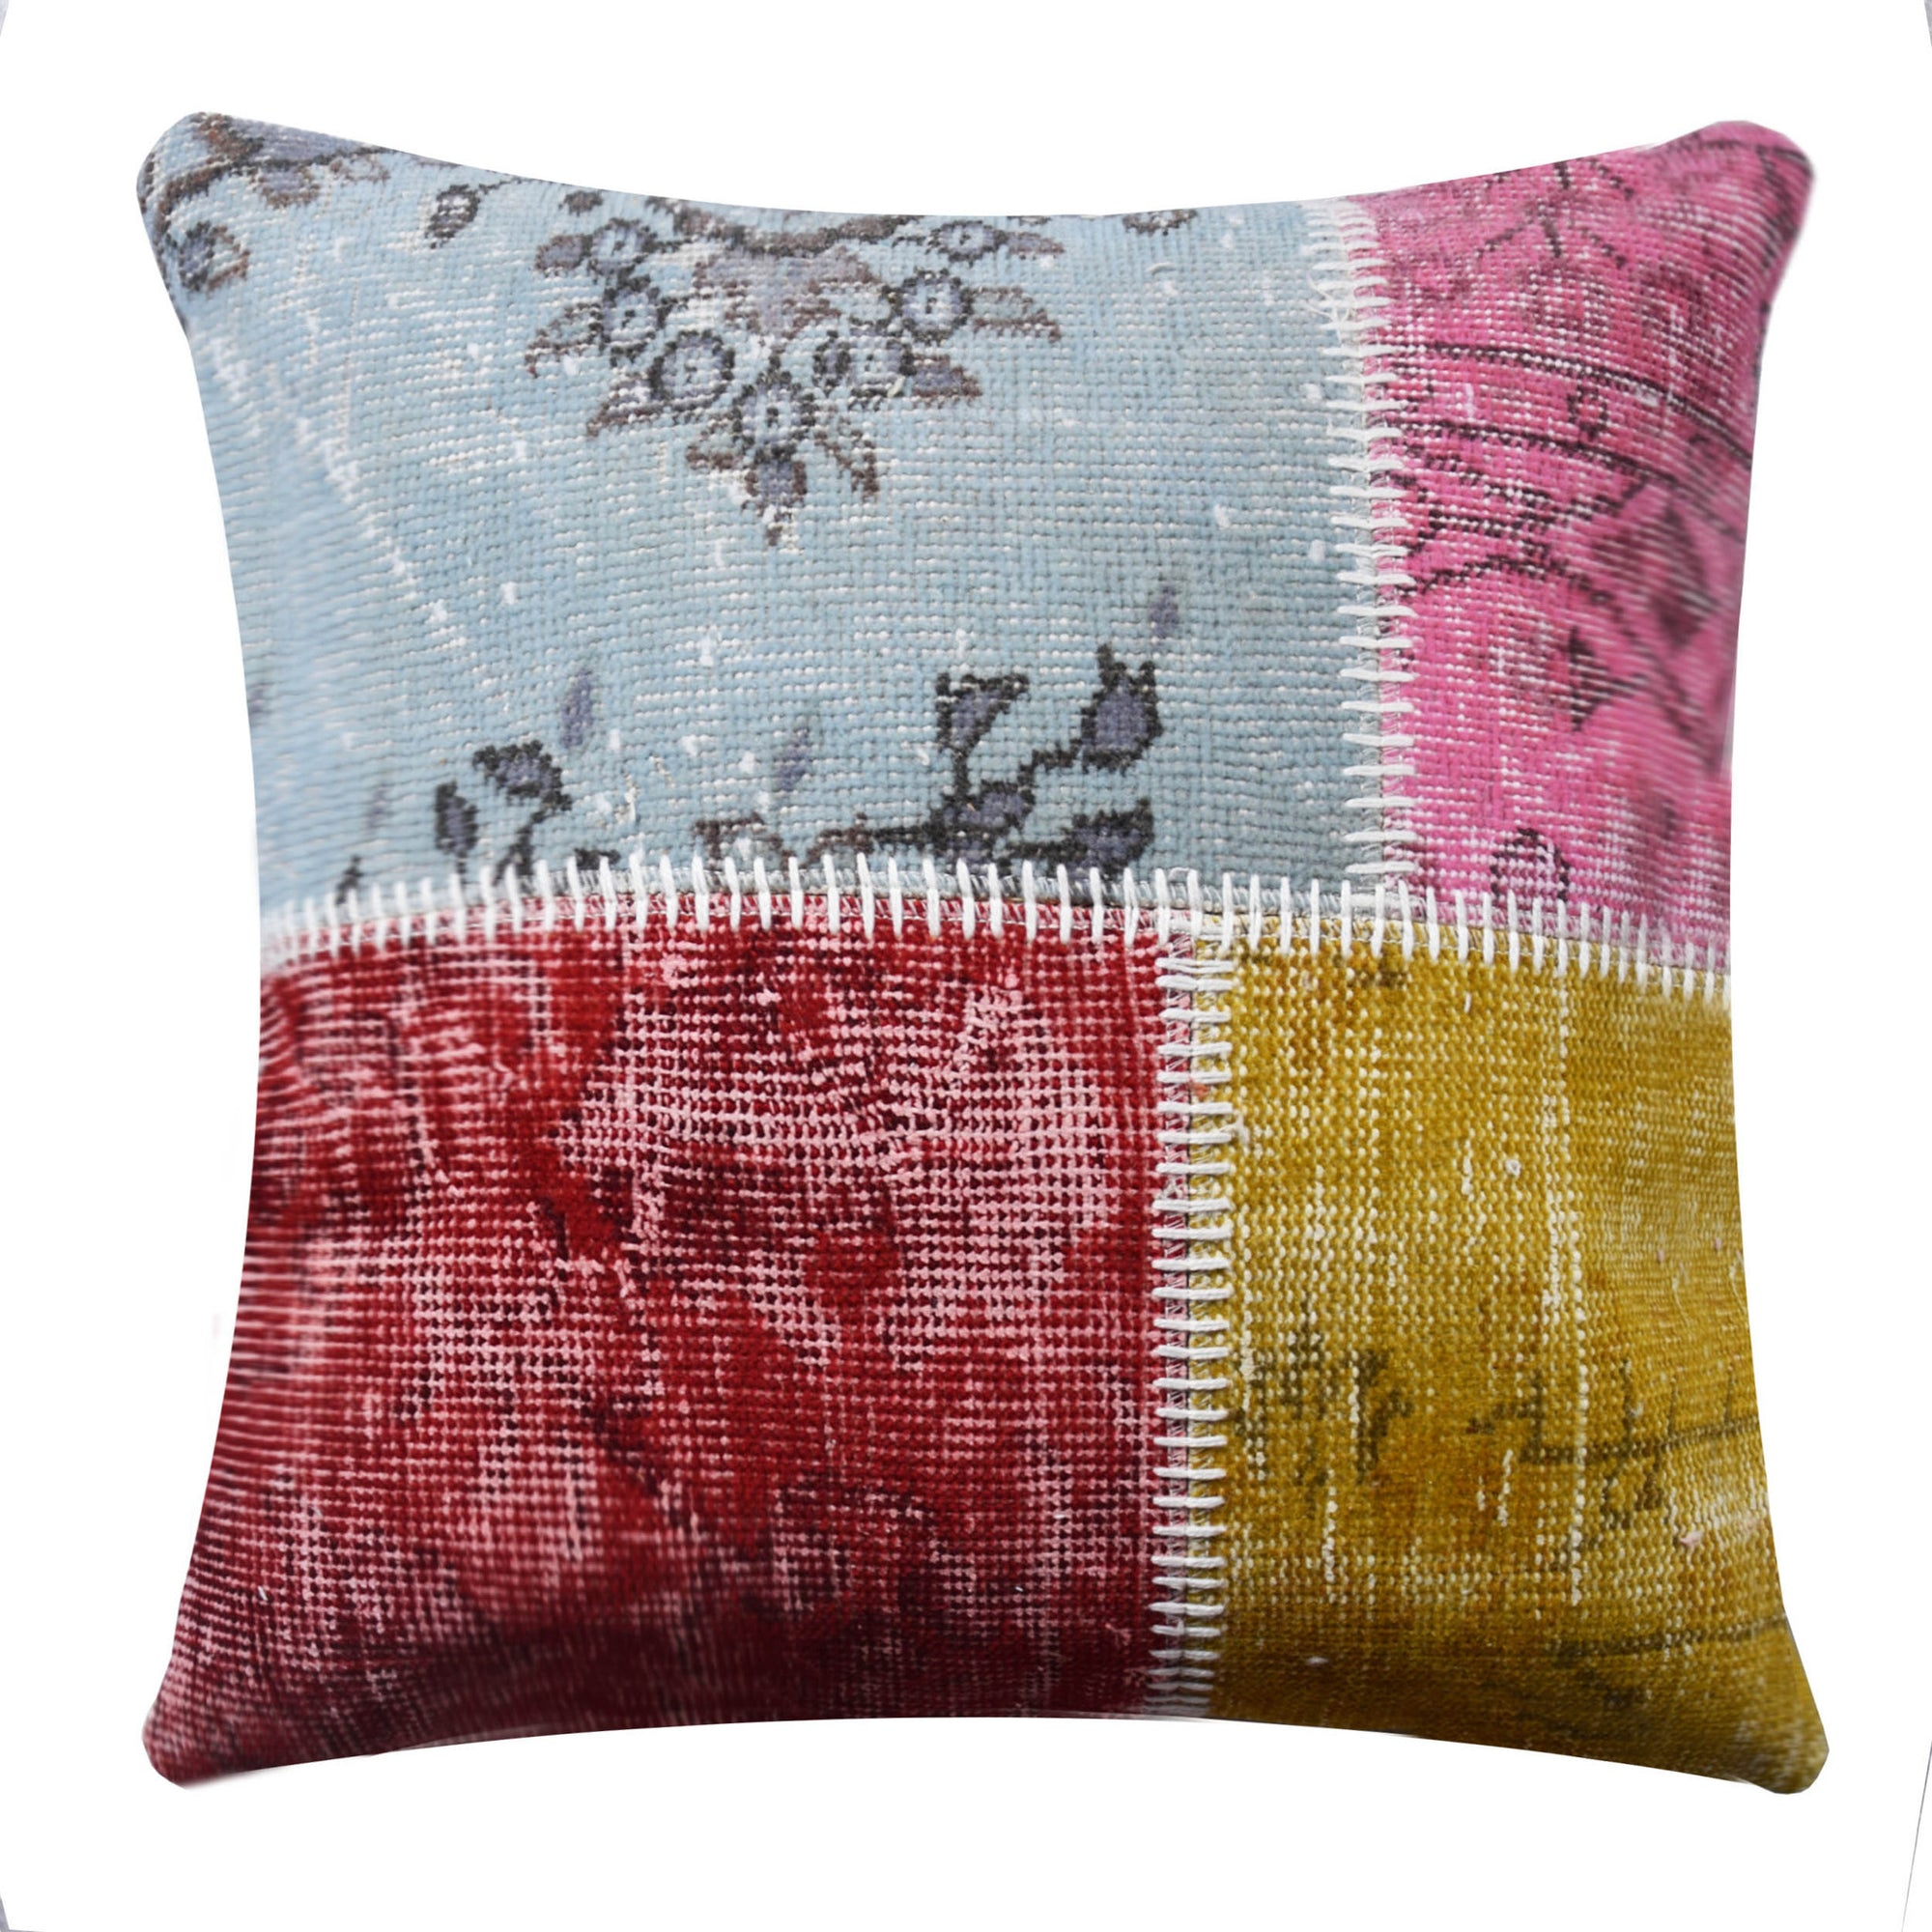 HALI X-Bursa Handmade over dyed CUSHION COVER 45X45 CM PWC0011 - ebarza